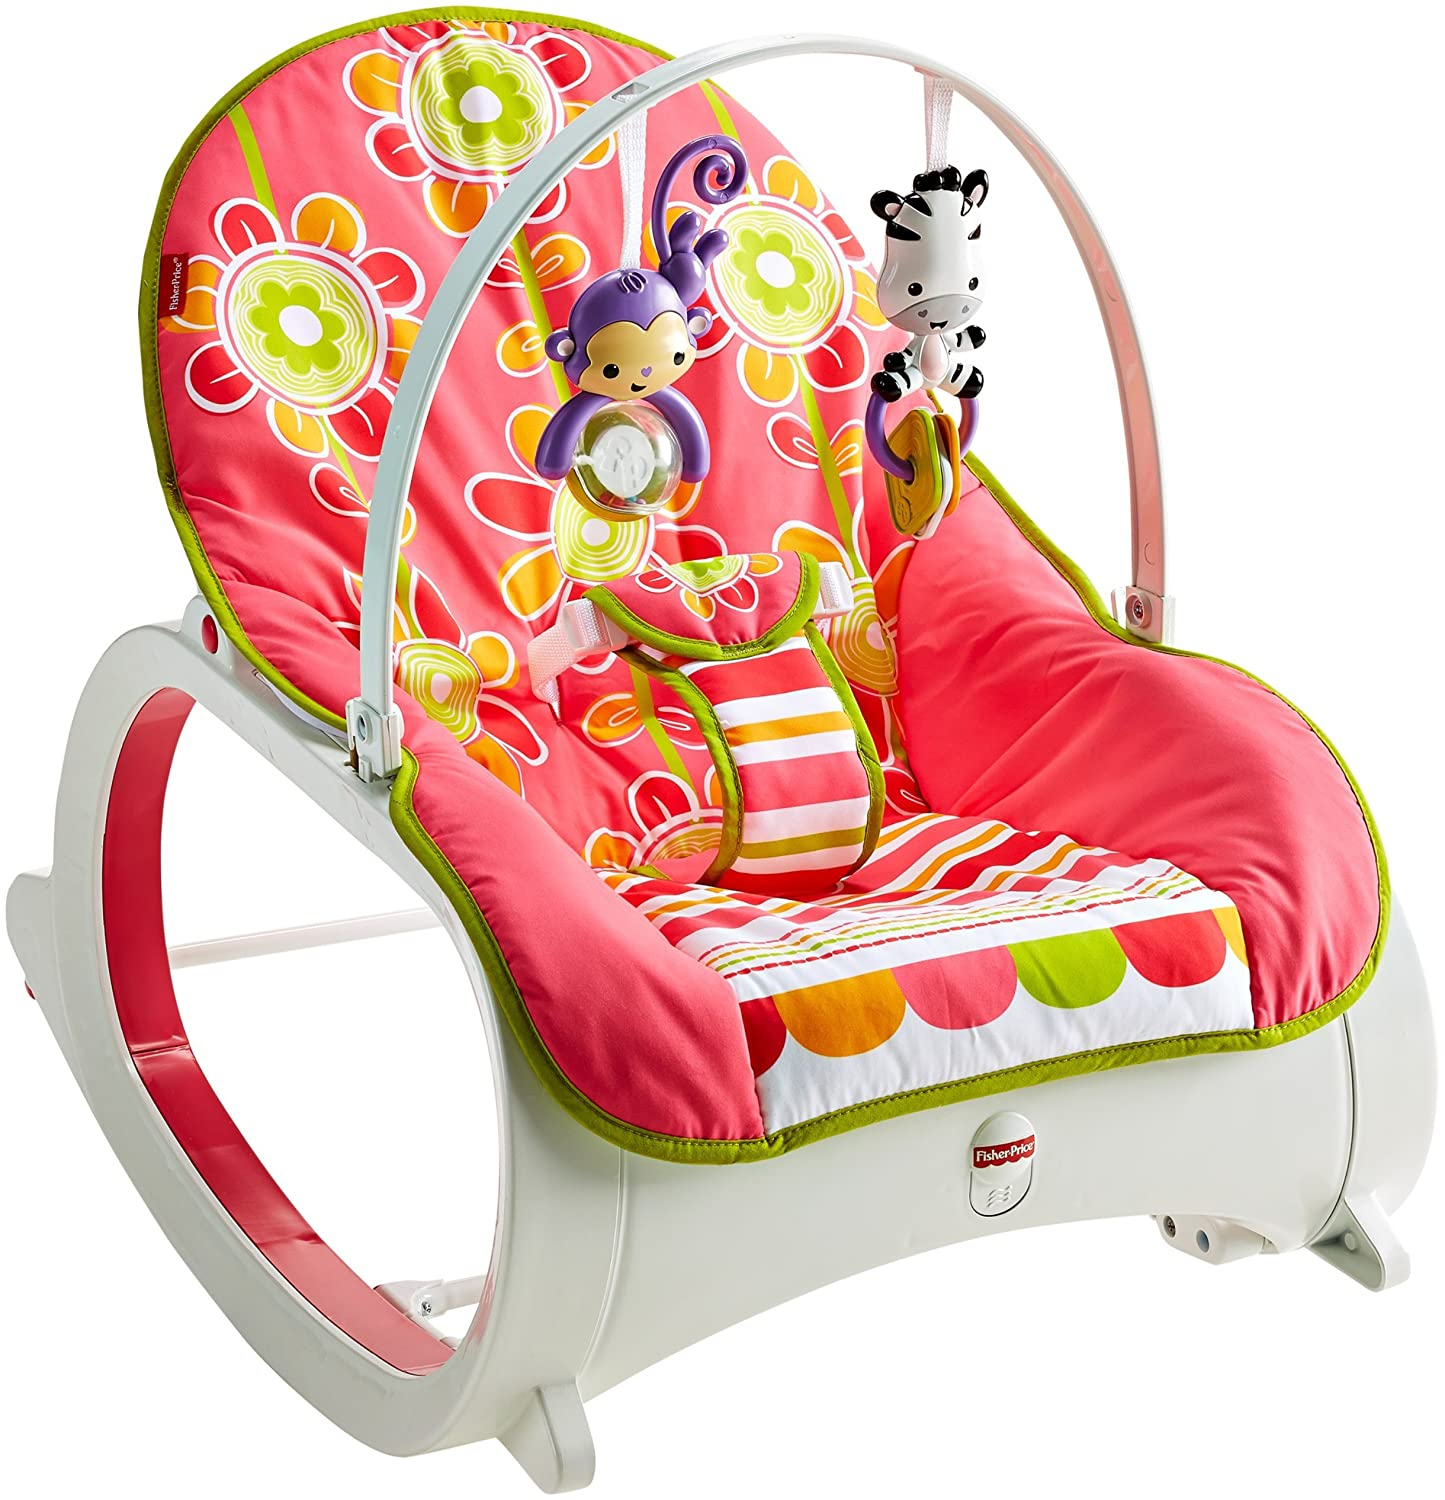 Delicieux Baby Swing Set Portable Girls Cradle Rocker Pink Travel Sleep Infants Seat  Chair